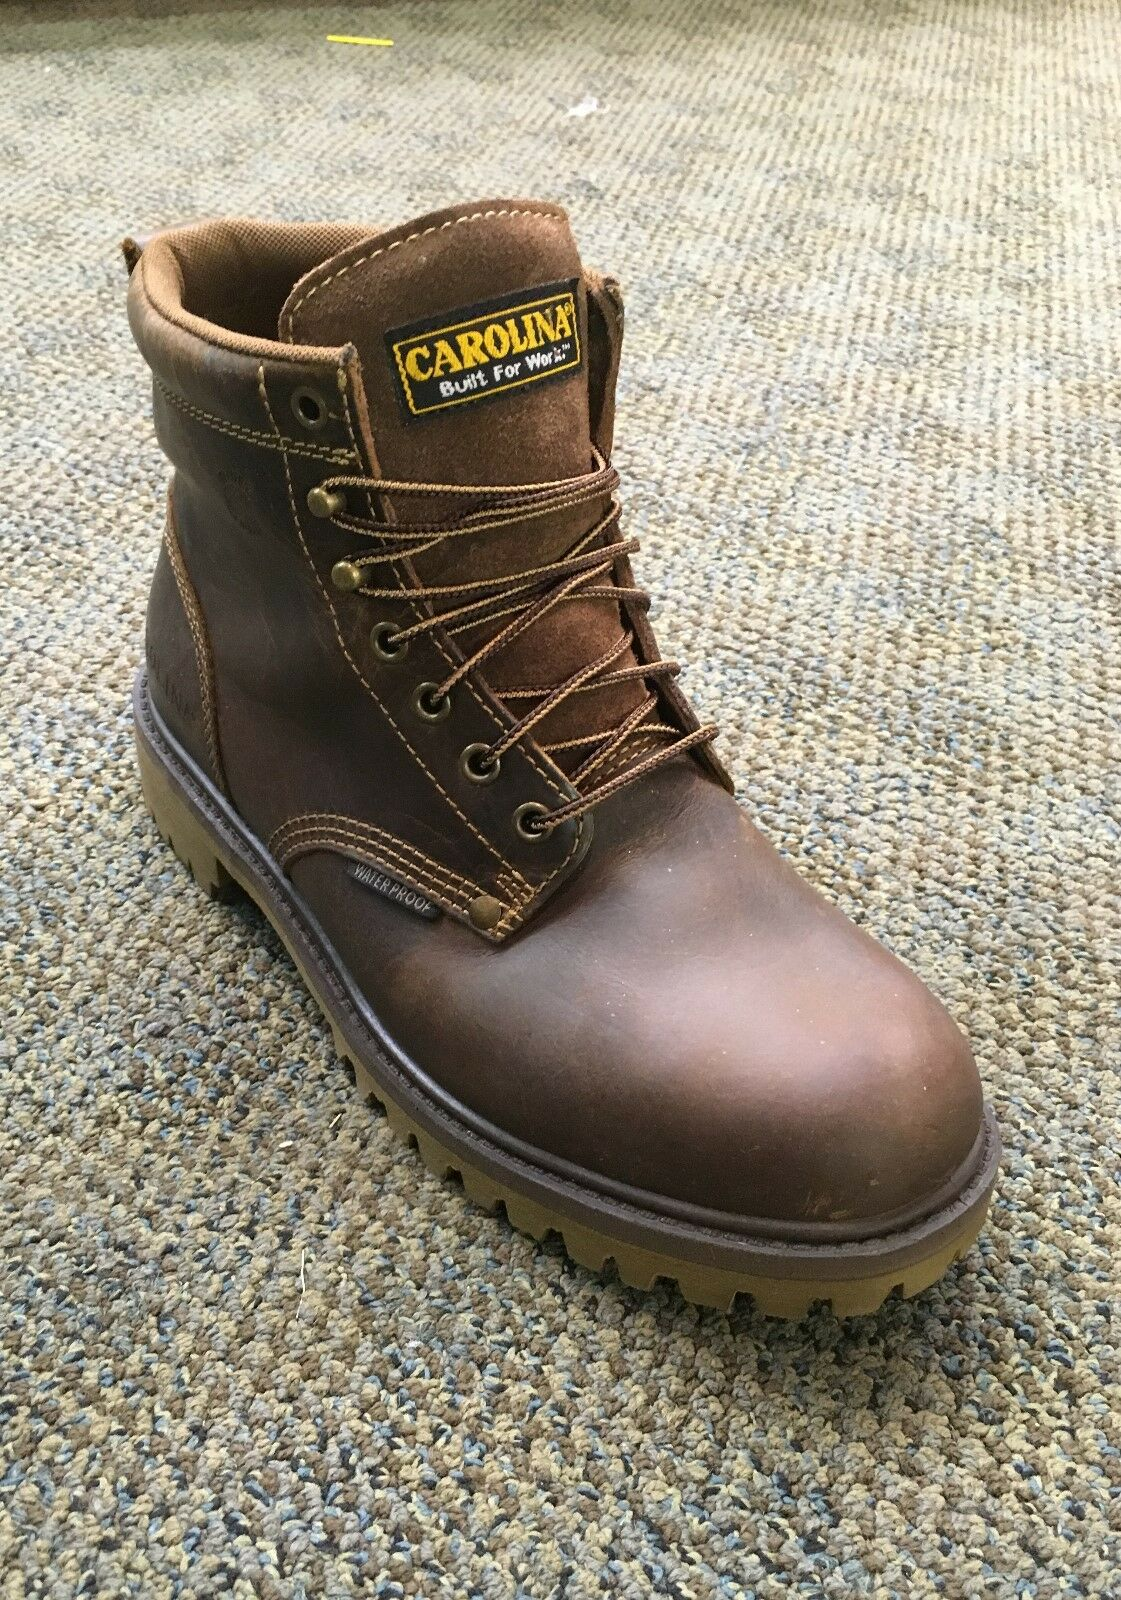 b104e0aea543 Men s Women s Snow boots by sears size 10 Fine workmanship online online  online shop various kinds 472c1a